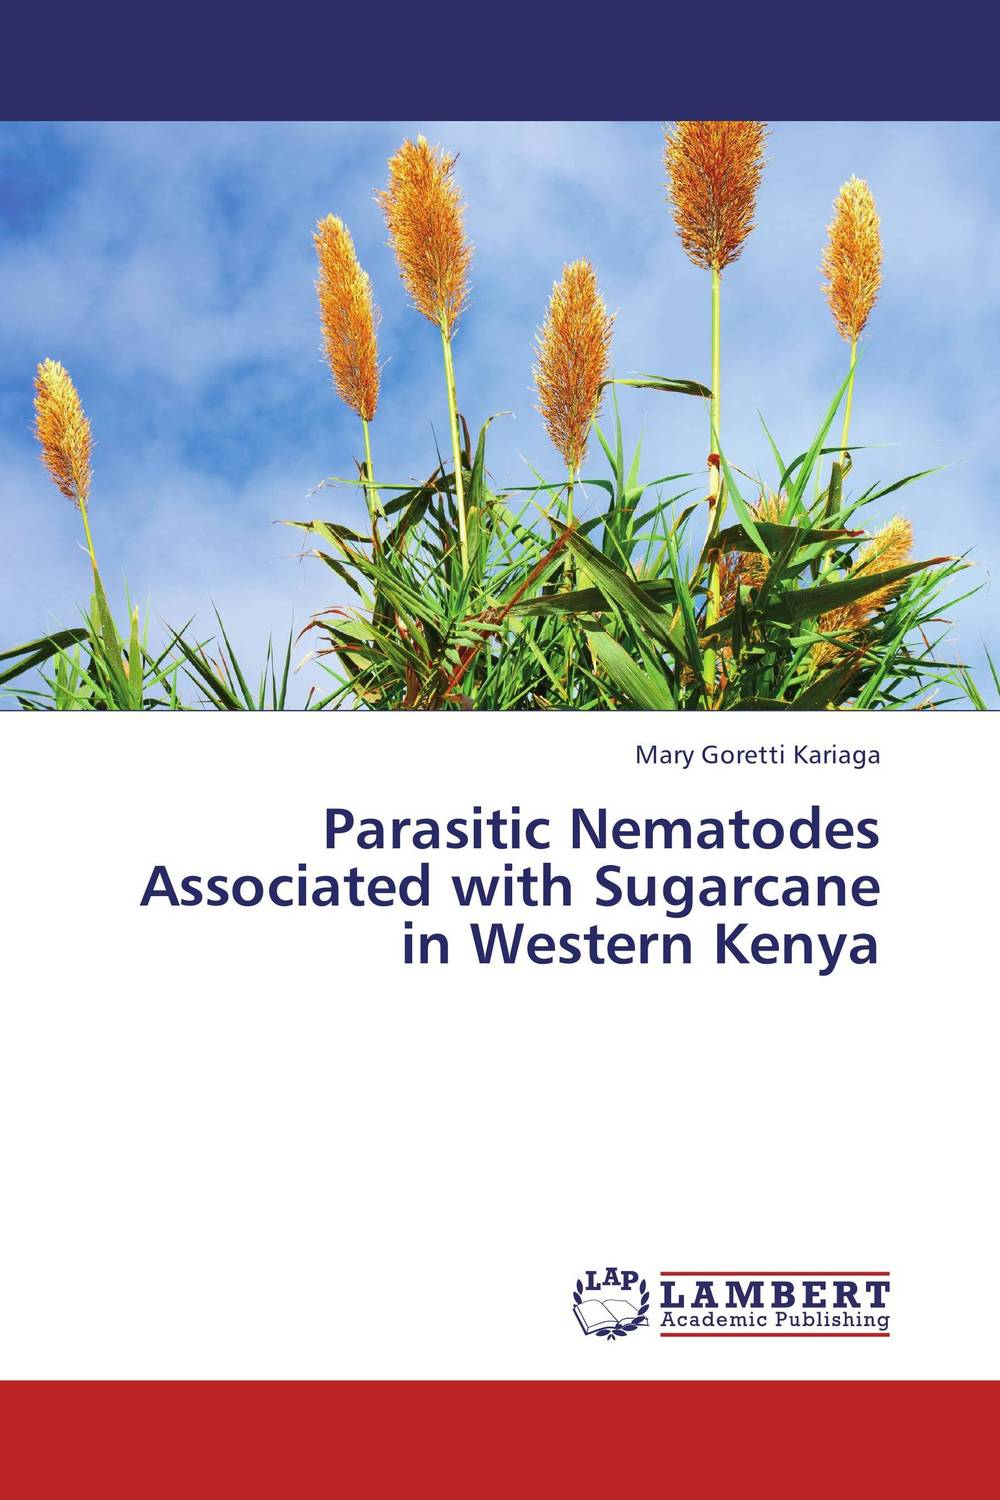 Parasitic Nematodes Associated with Sugarcane in Western Kenya arvinder pal singh batra jeewandeep kaur and anil kumar pandey factors associated with breast cancer in amritsar region